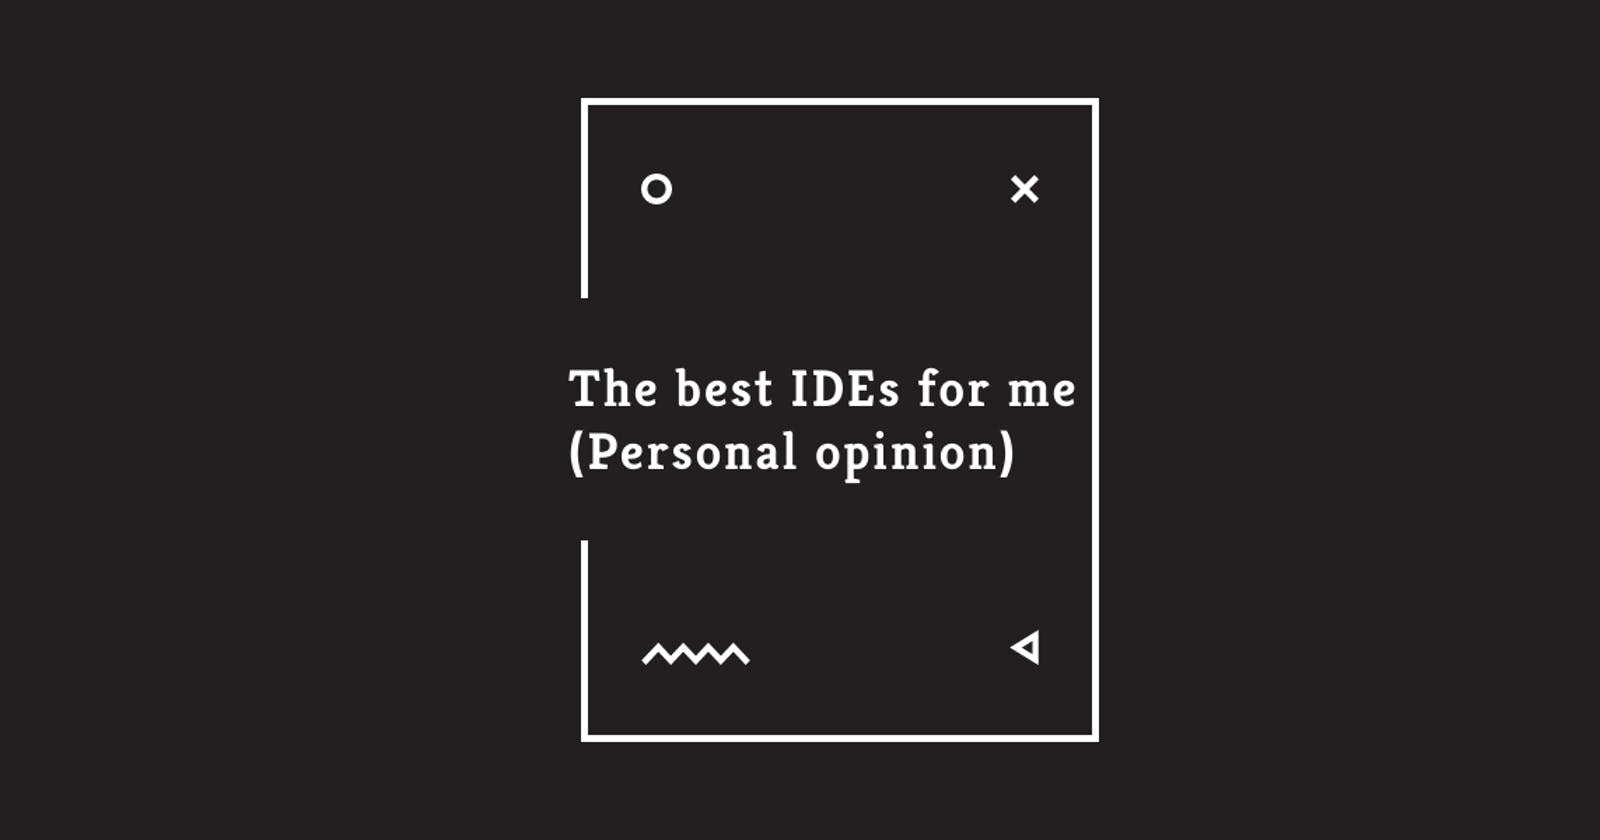 The best IDEs for me (Personal opinion)